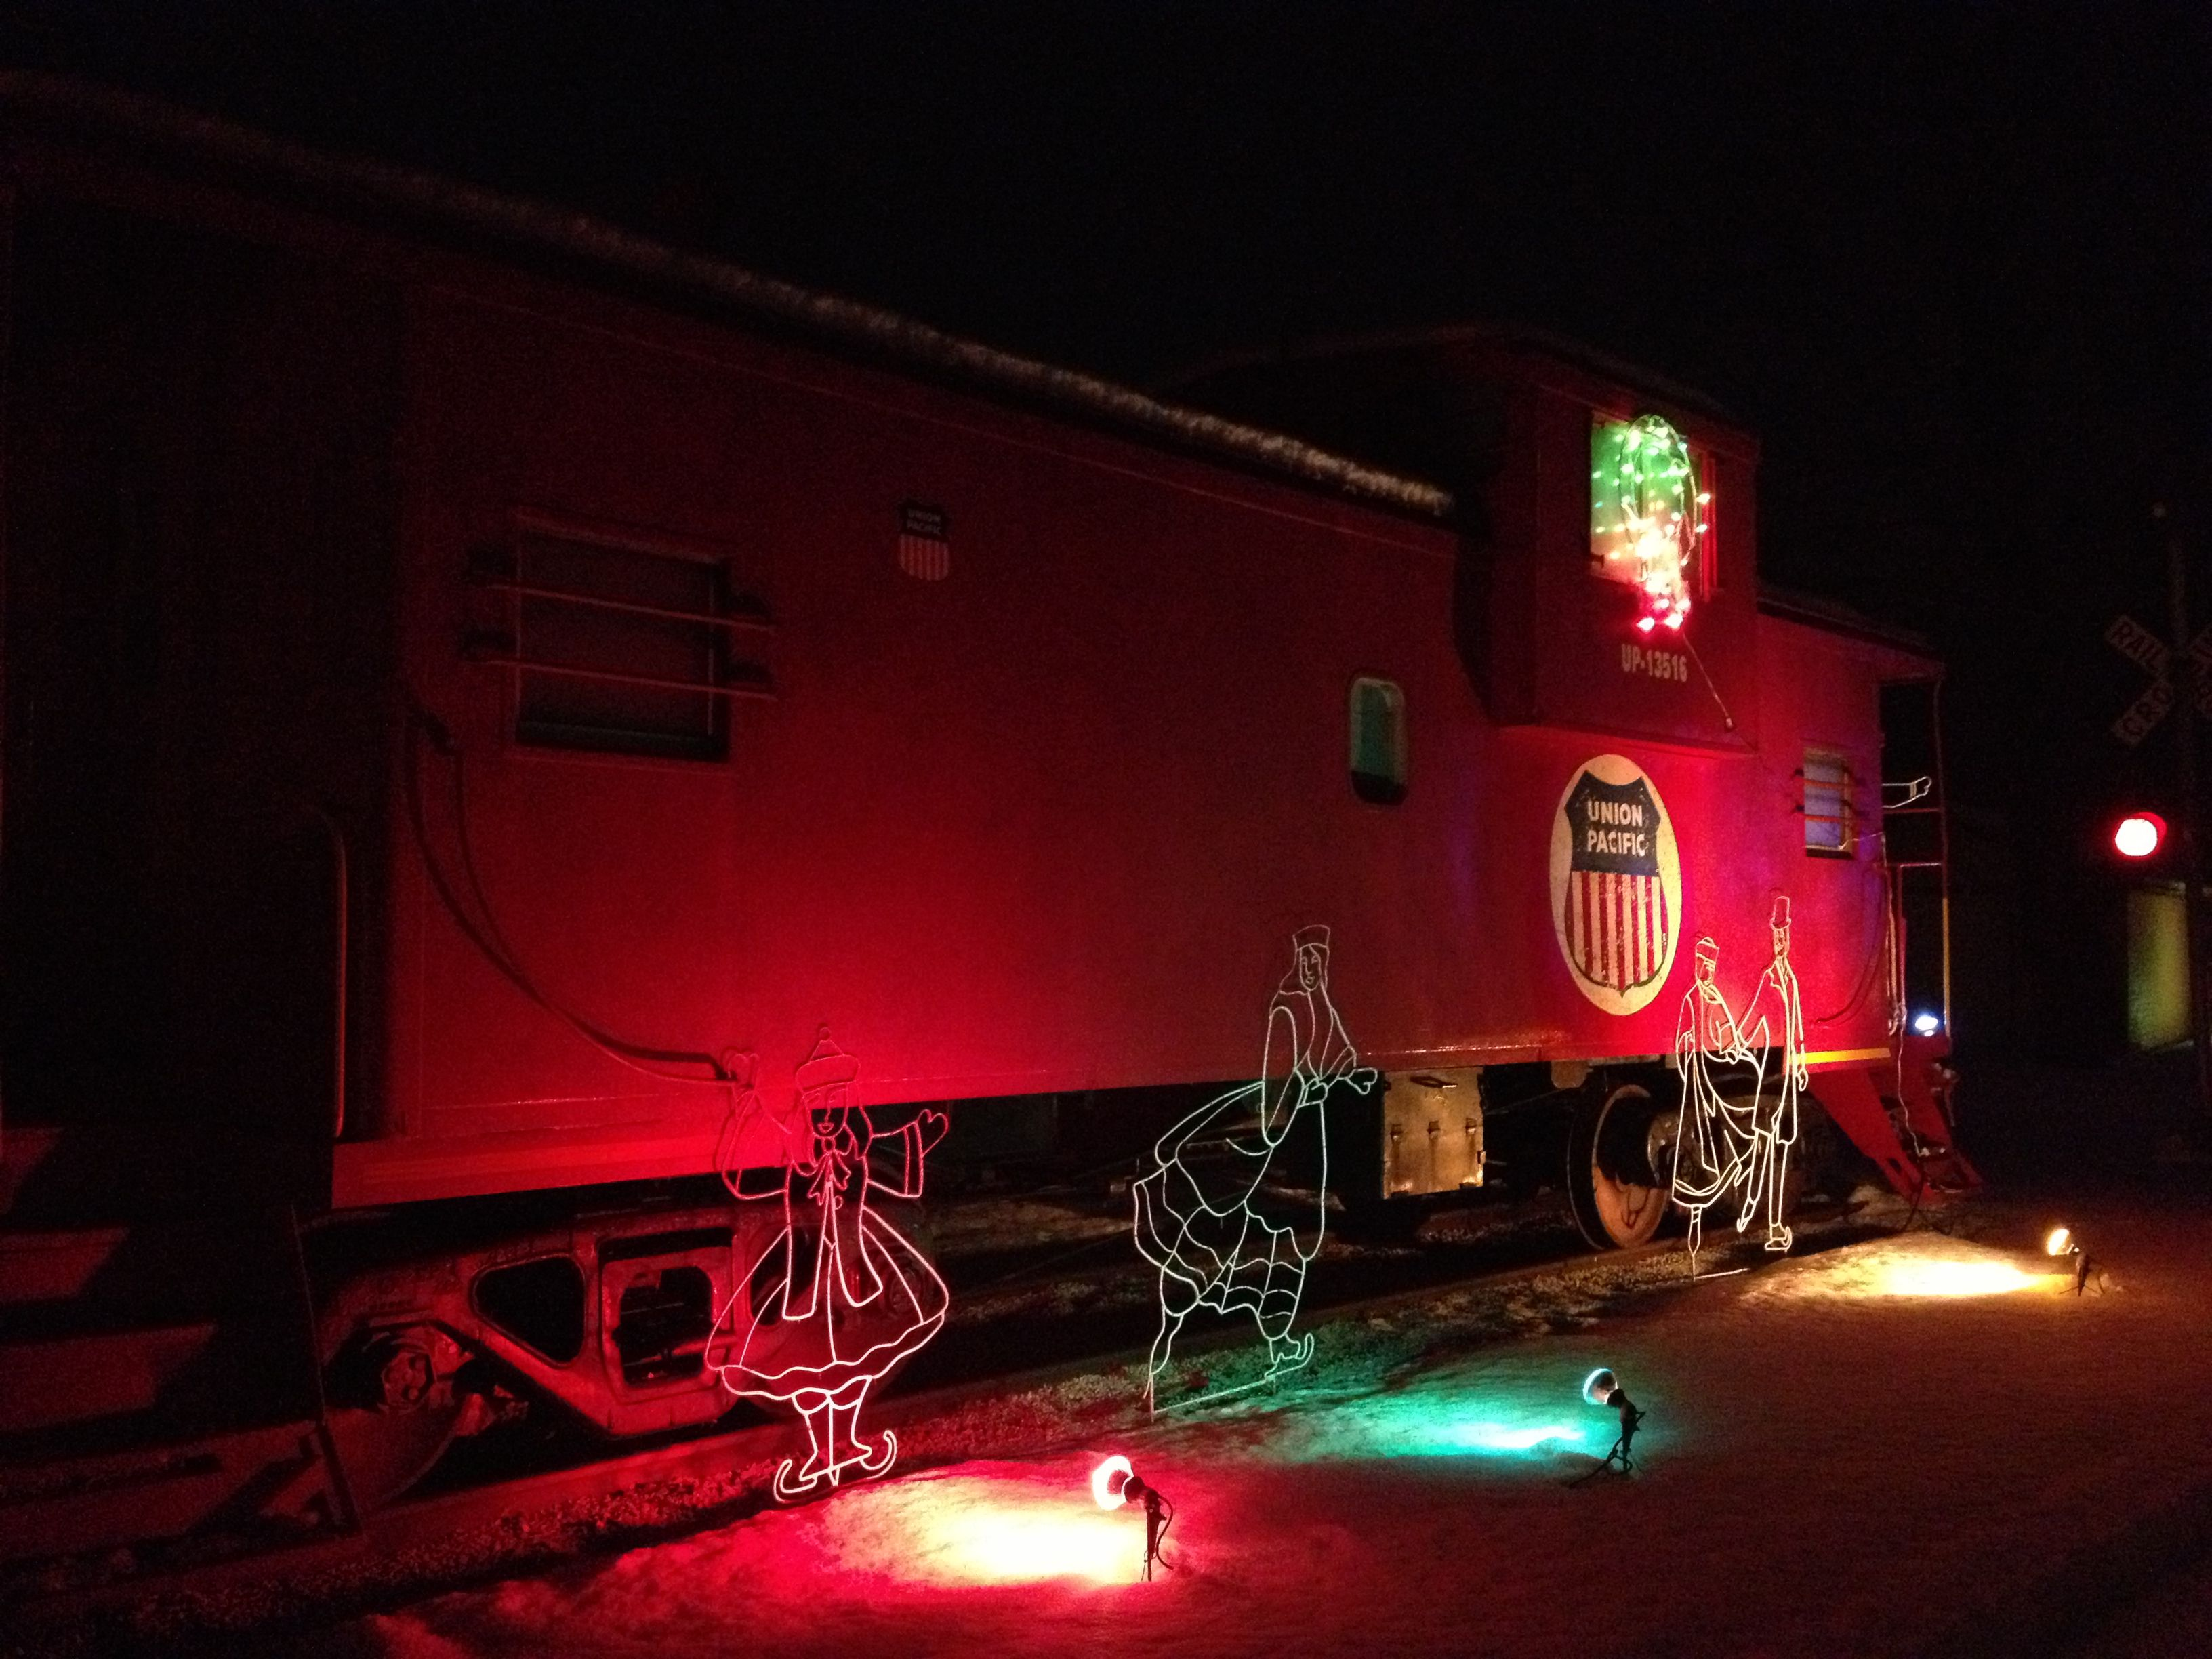 Union Pacific caboose at Eberhardt Park in Arthur Illinois, decorated for Christmas